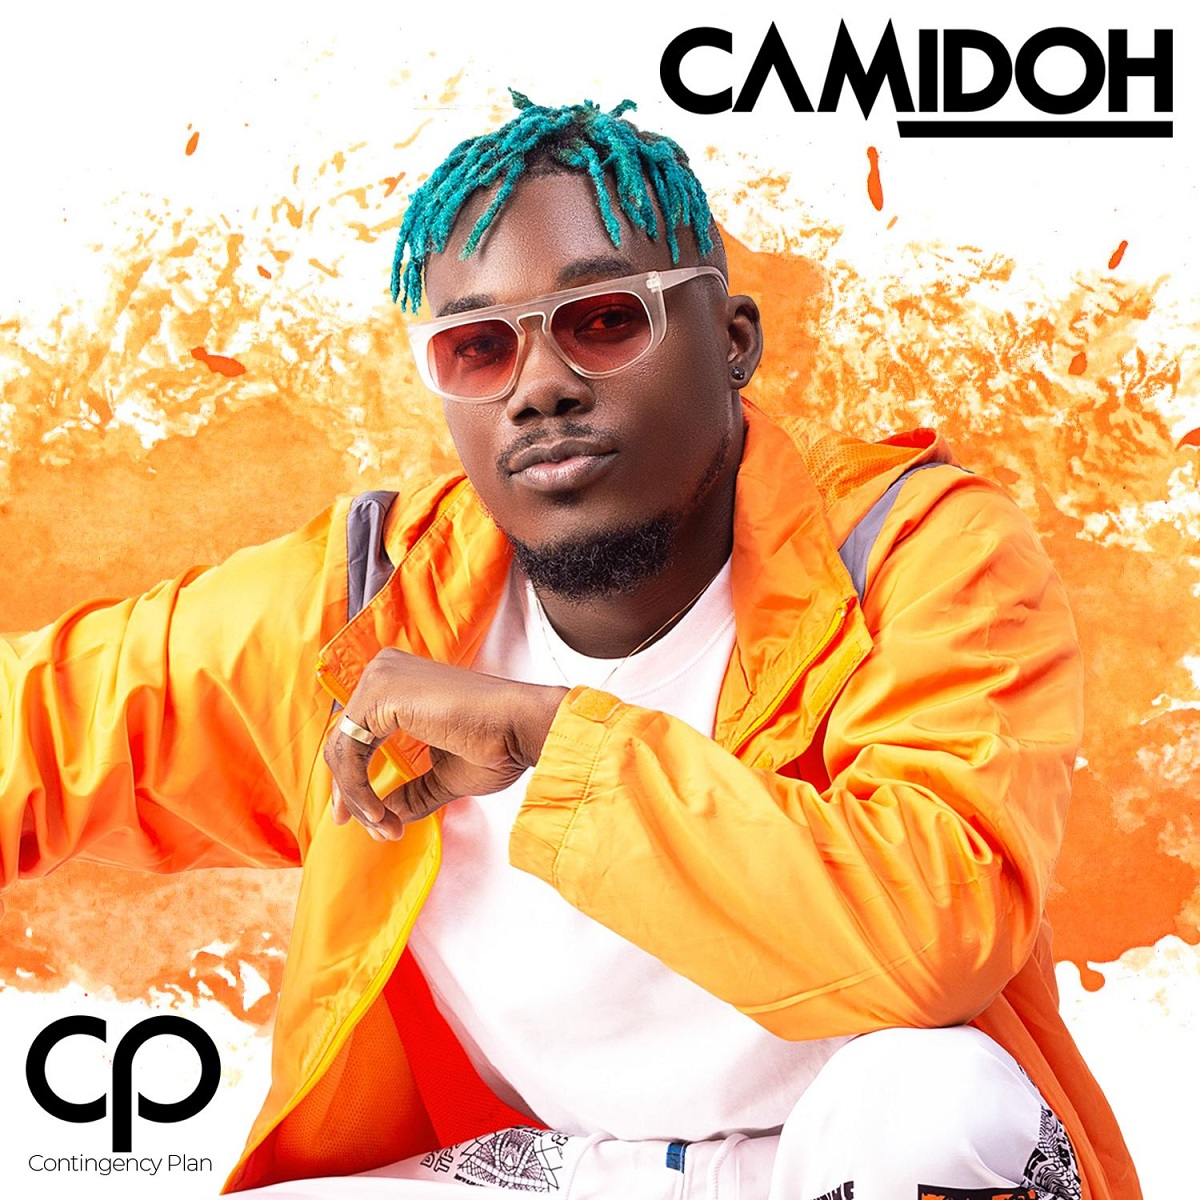 Lyrics: Maria by Camidoh